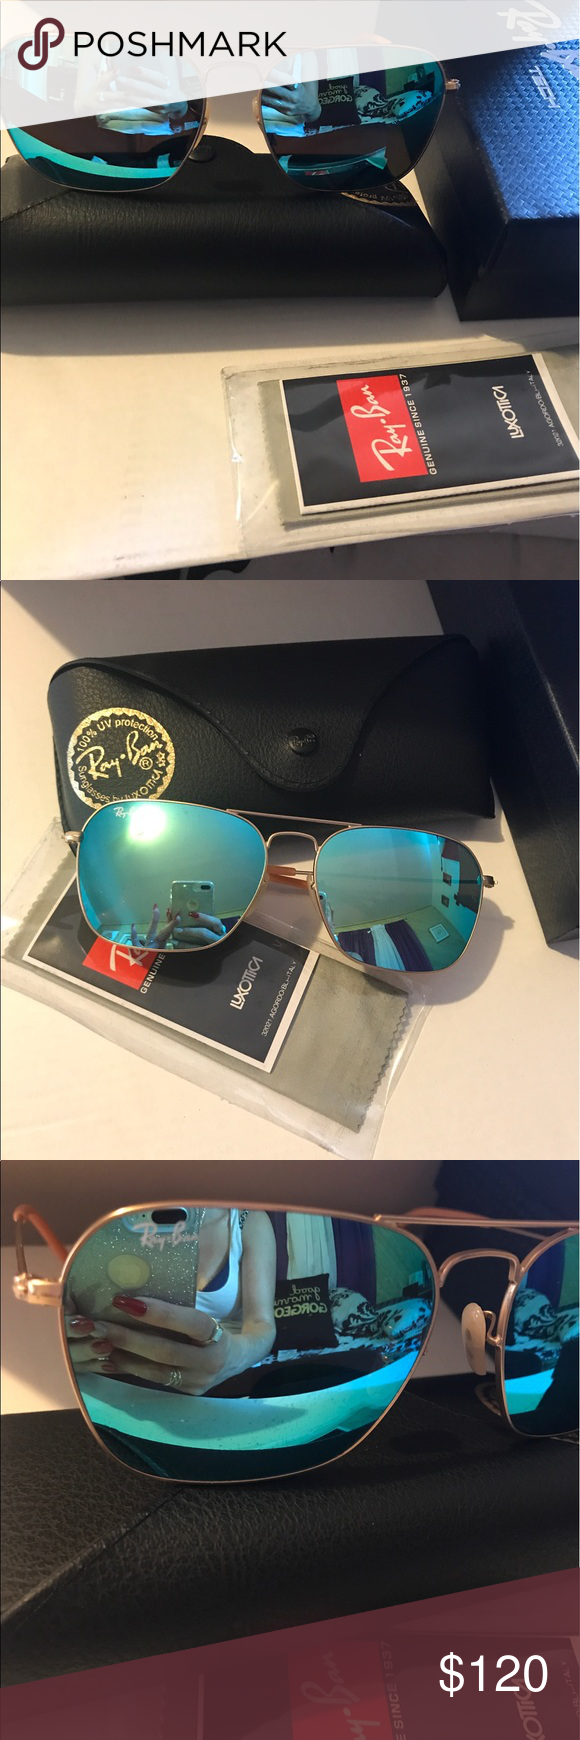 b066b96c3cb84 Brand New Ray-Ban Caravan Green Mirror RB 3136 Ray-Ban Caravan Matte Gold  Frame   Green Mirror RB 3136 112 19 58mm Medium